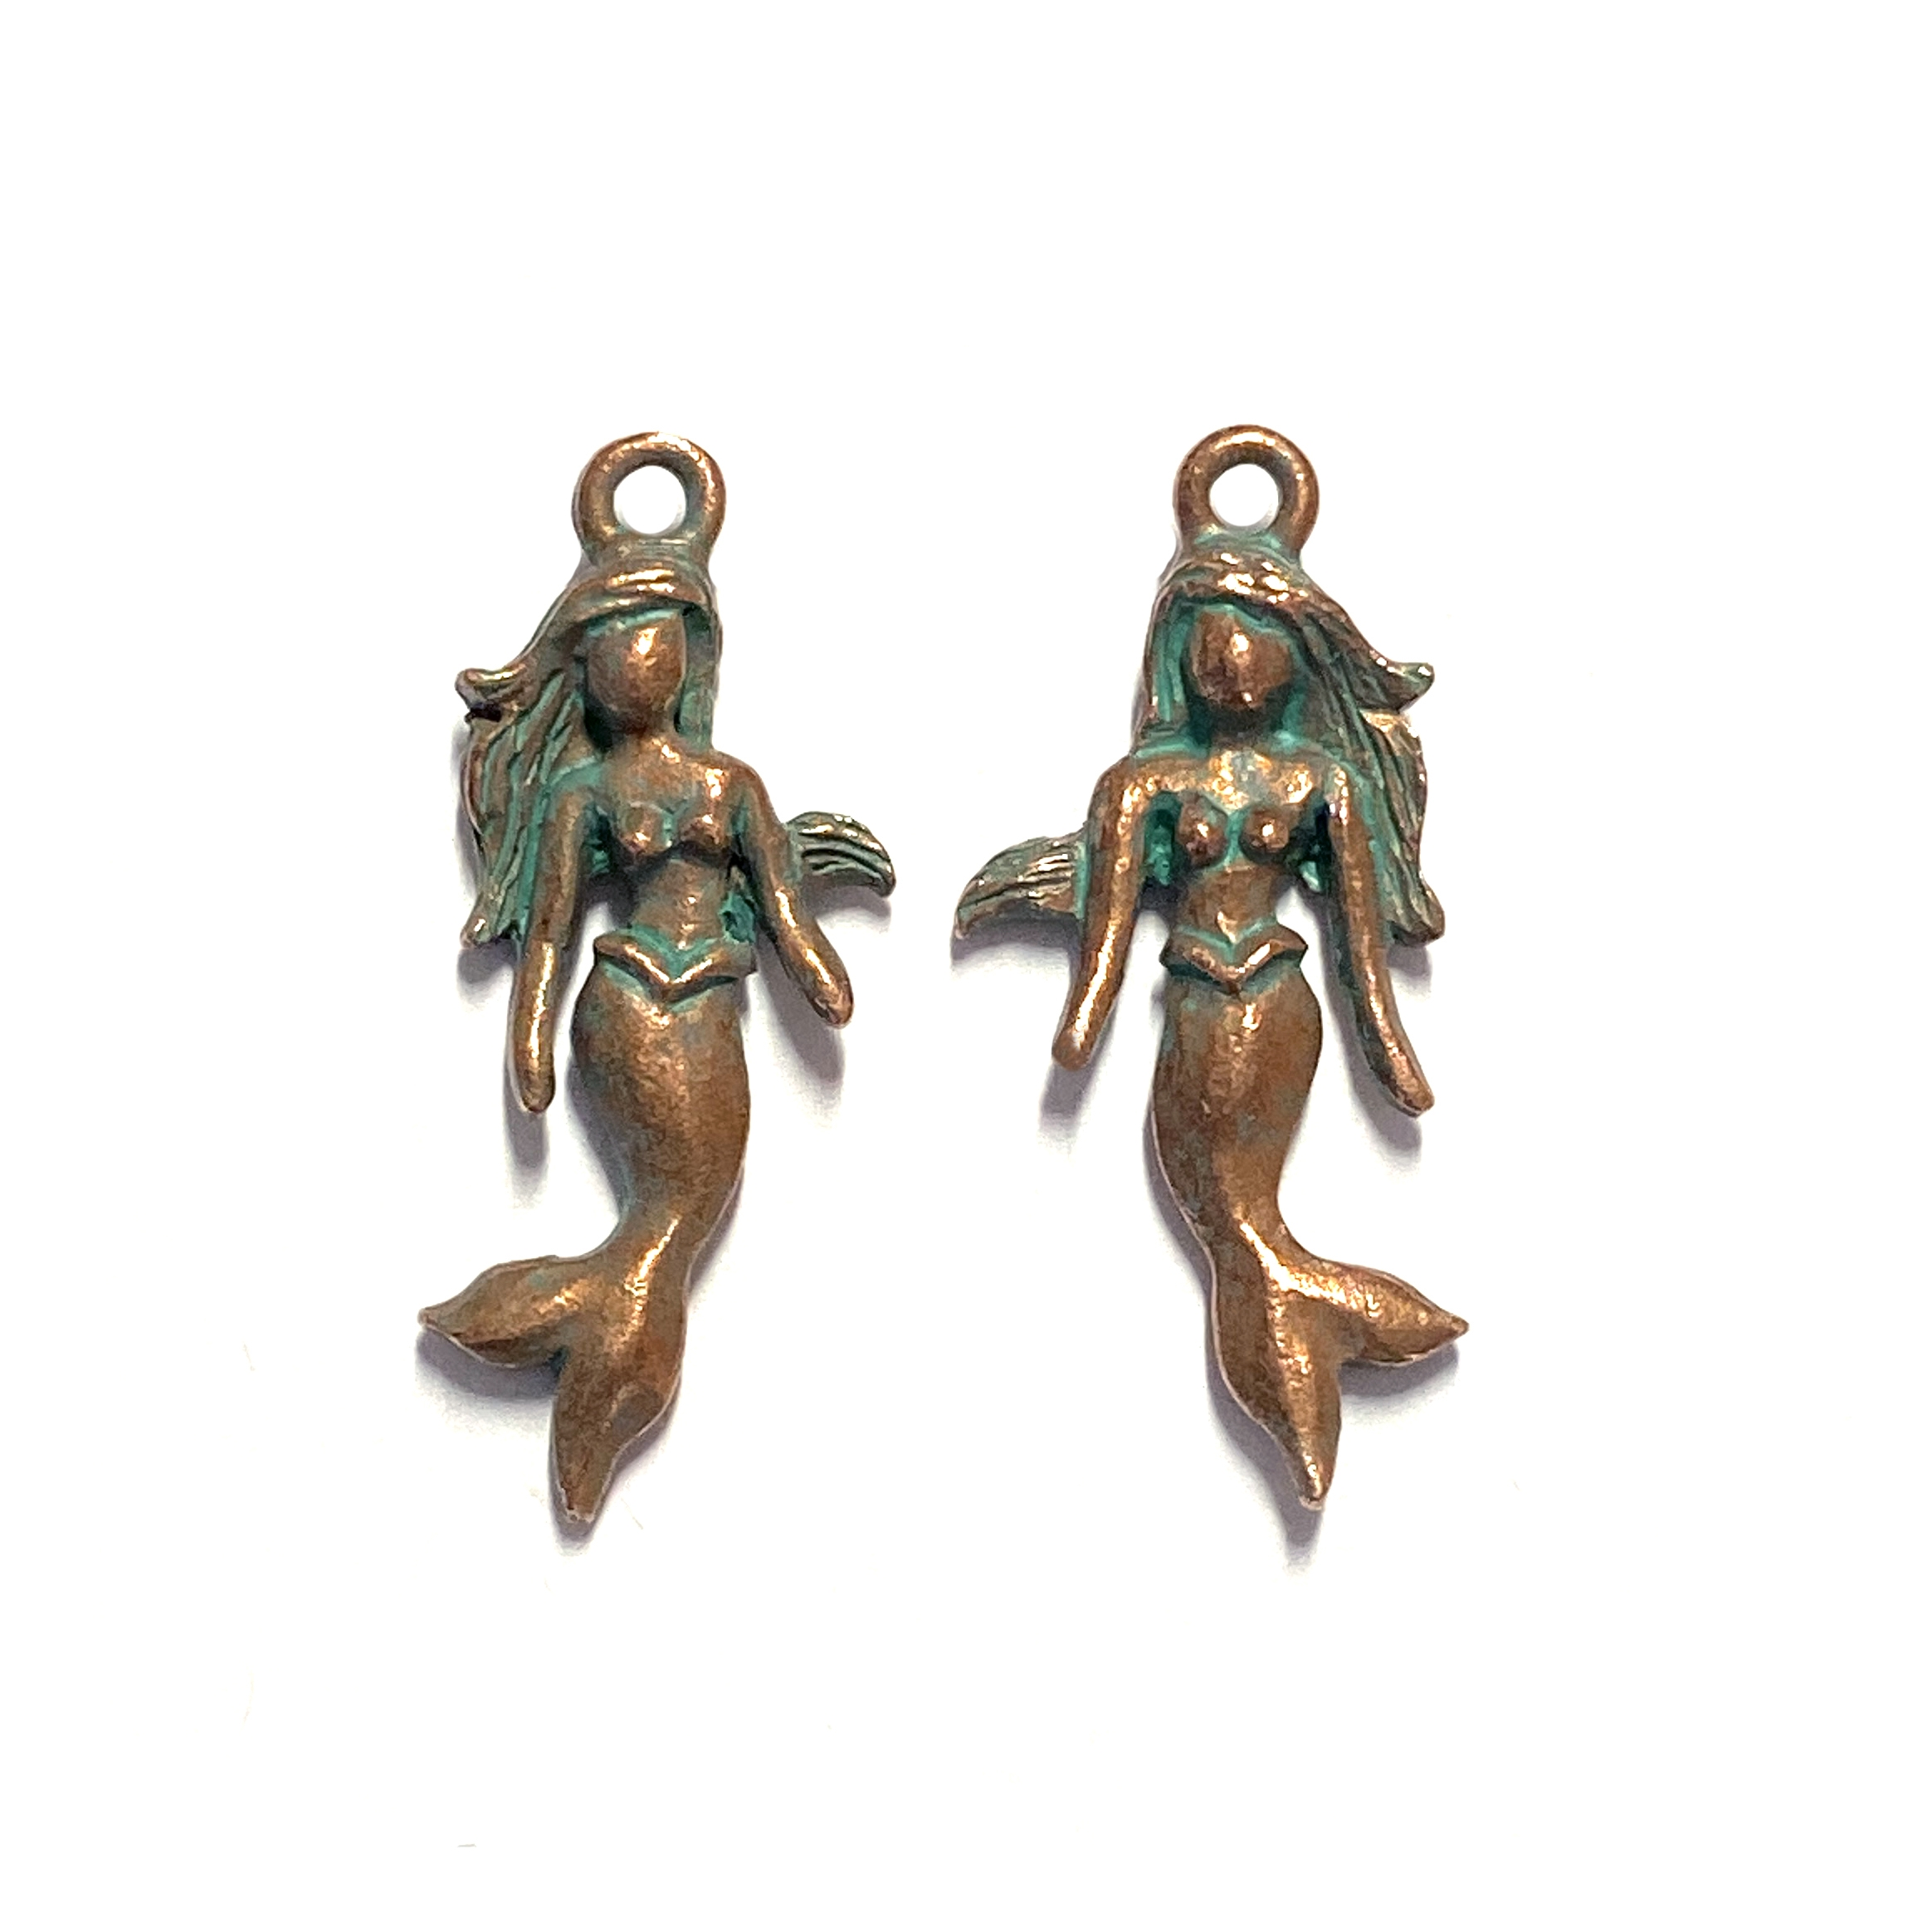 mermaid charms, weathered copper, lead free pewter, B'sue by 1928, vintage jewelry parts, pewter jewelry parts, nickel free, us made, 1928 jewelry, B'sue Boutiques, vintage supplies, jewelry supplies, pewter, 28x12mm, mermaids, charm, aqua patina, 01467